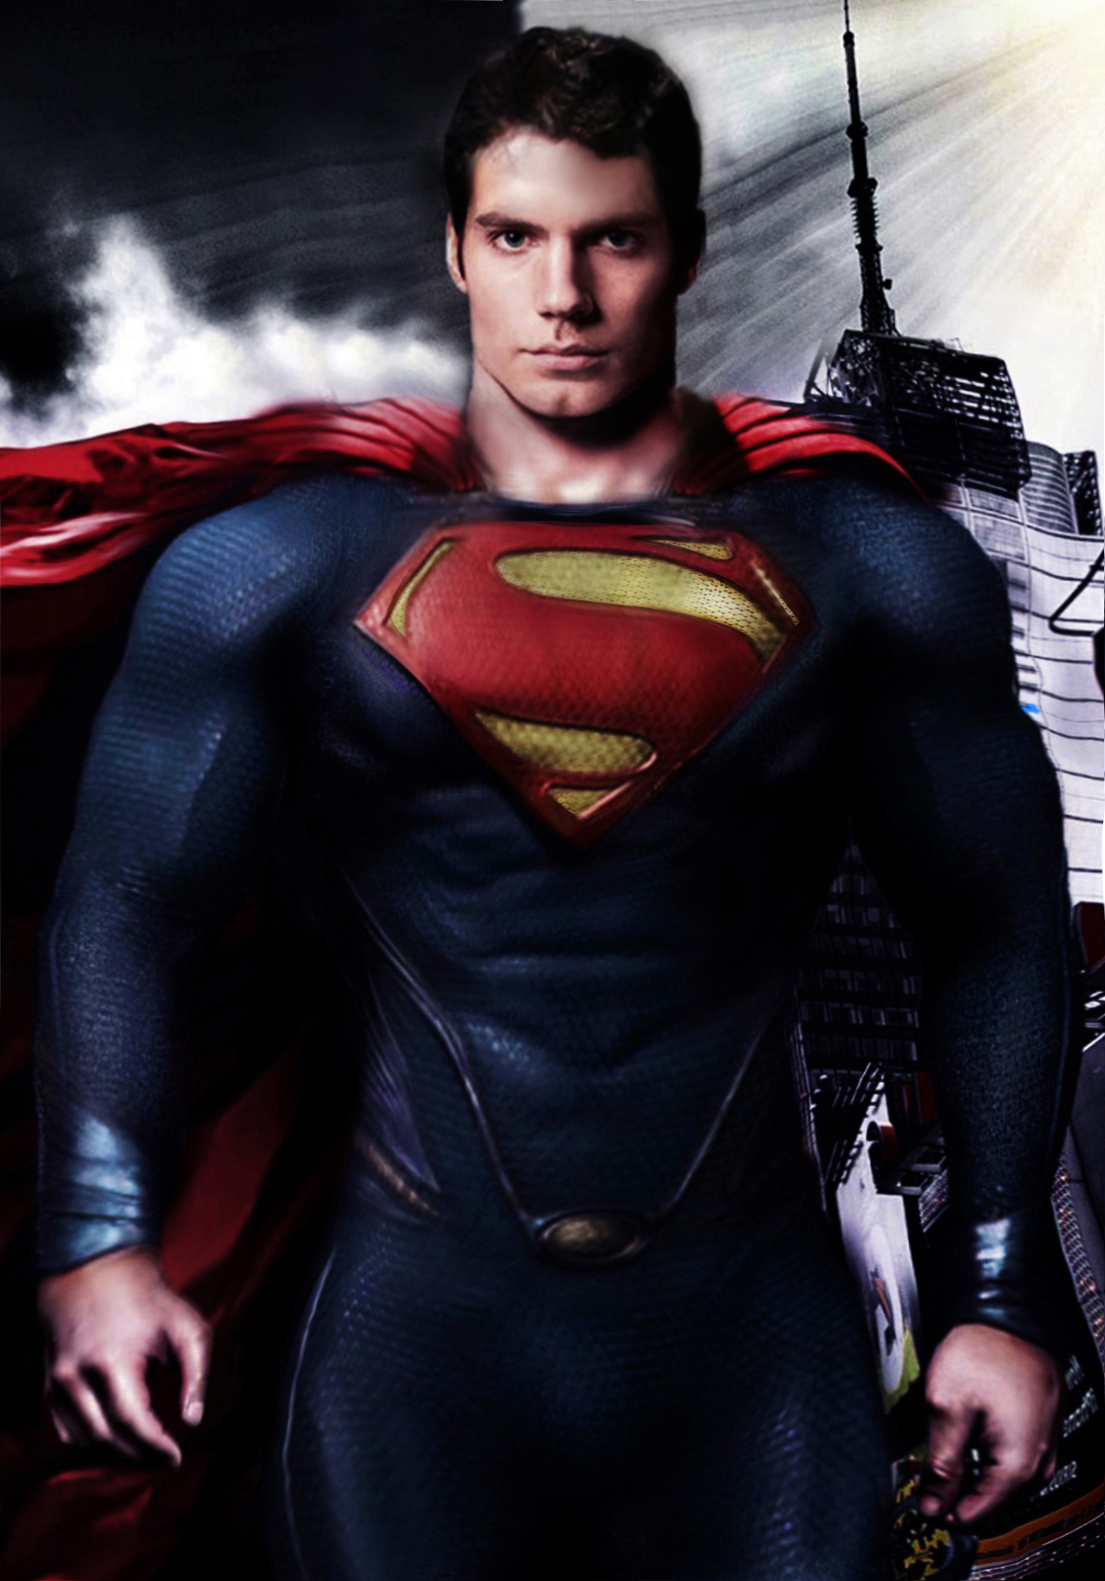 http://fc06.deviantart.net/fs70/f/2011/254/1/1/superman__man_of_steel_by_kyl_el7-d49cbdv.jpg